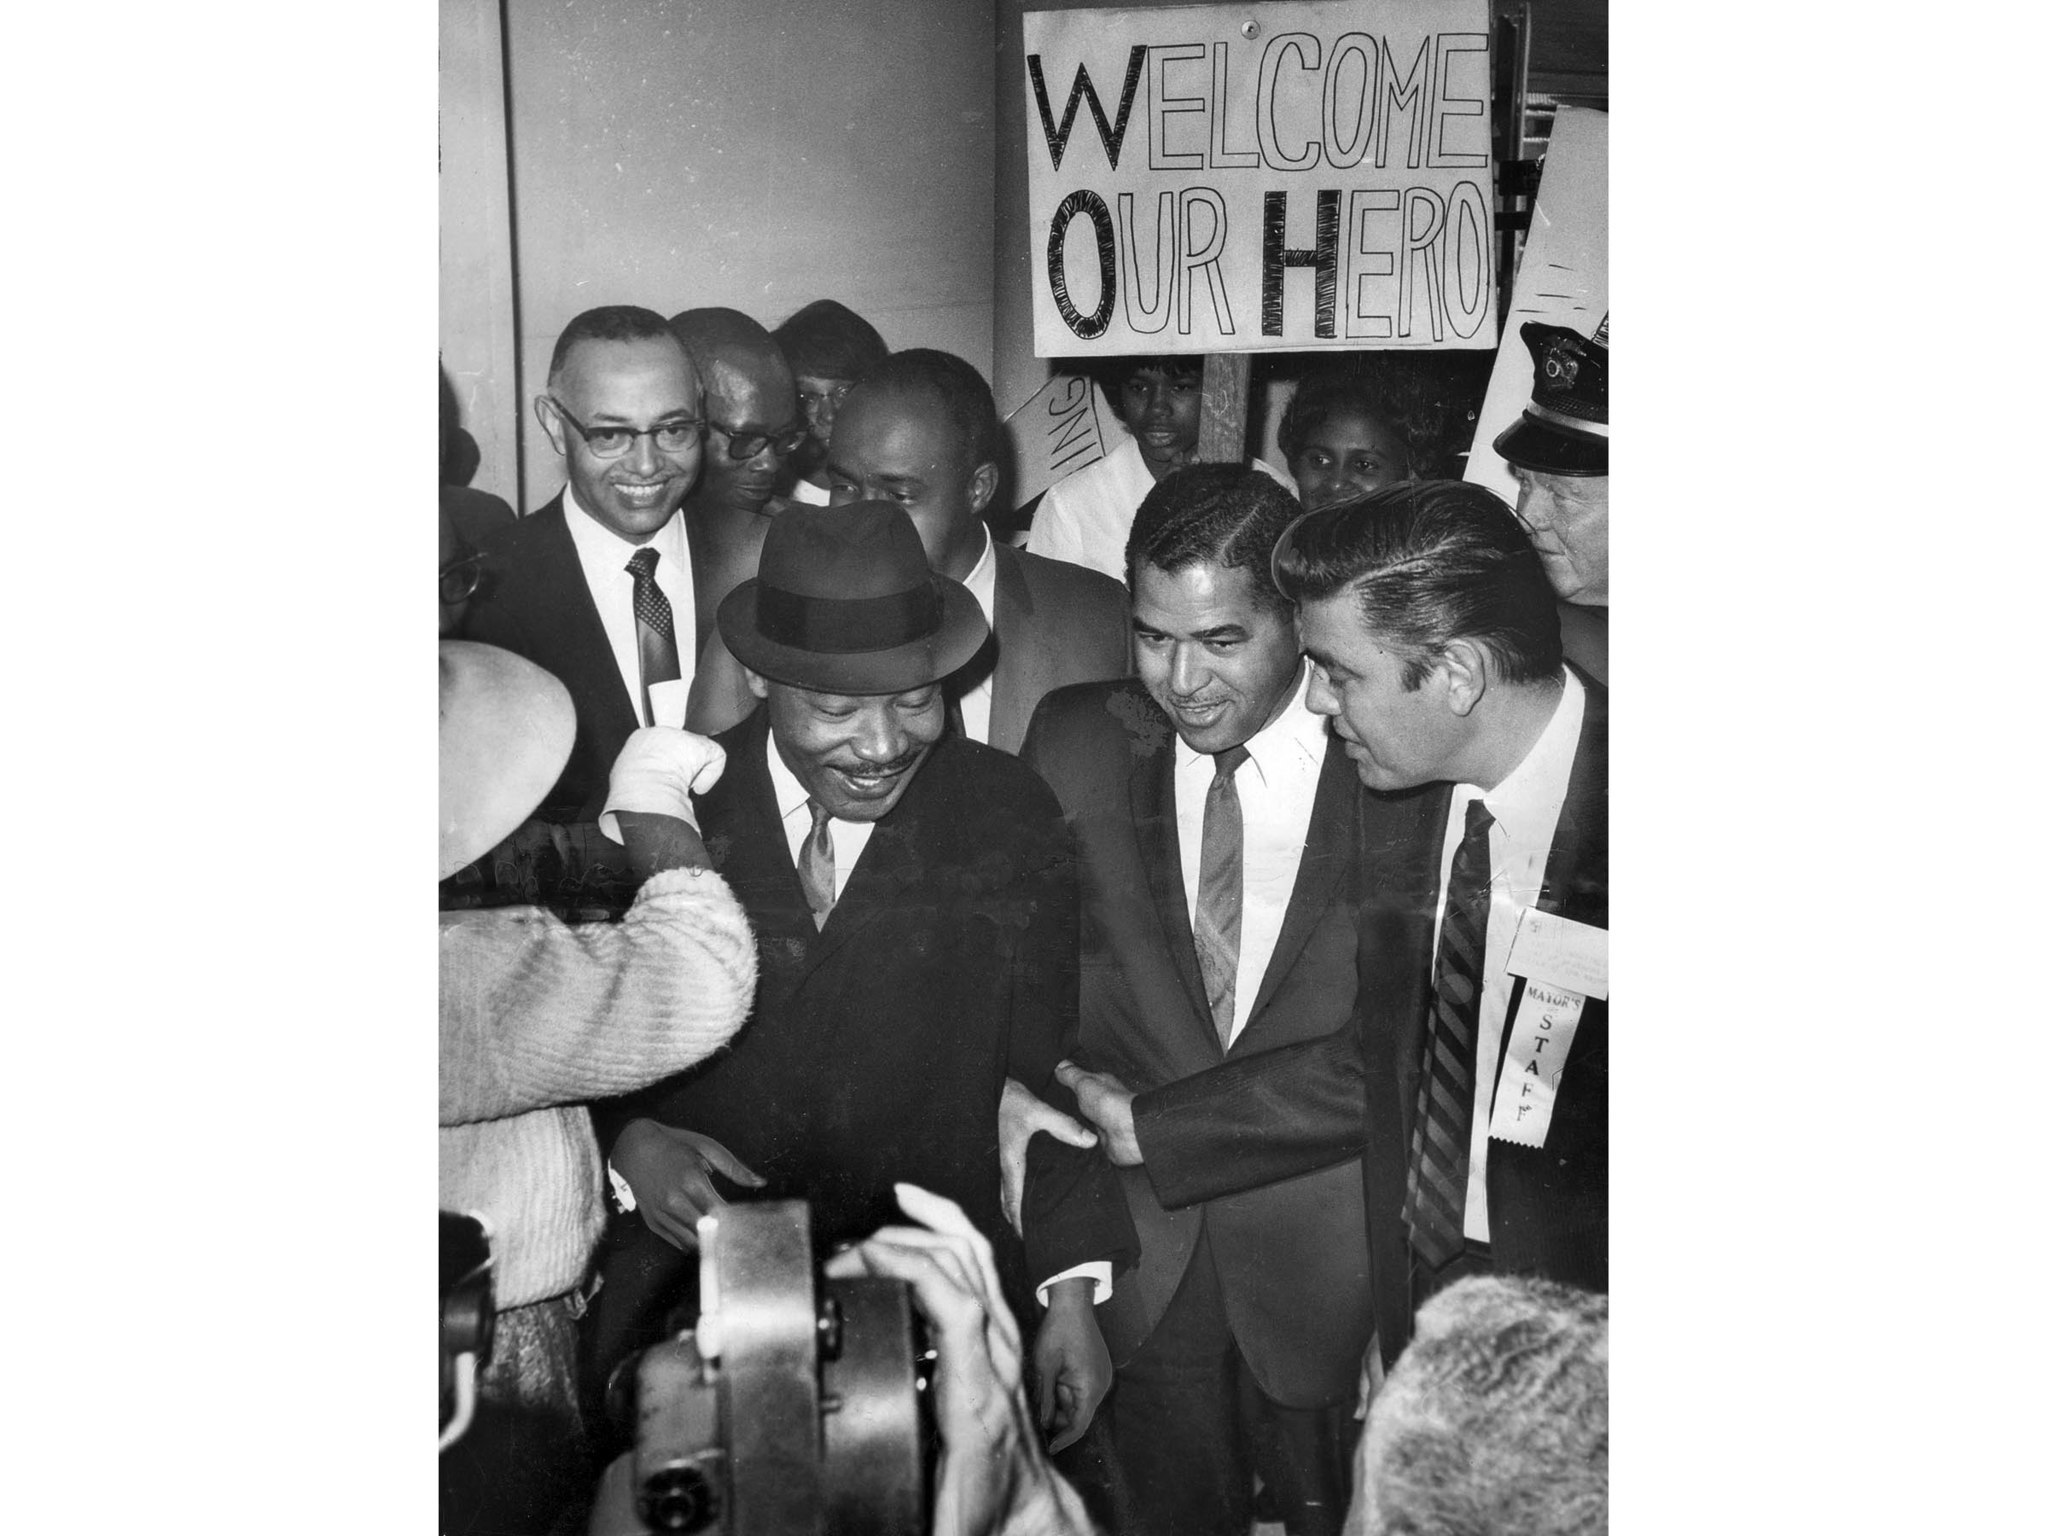 Feb. 24, 1965: Dr. Martin Luther King is welcomed by crowd of admirers on his arrival at LAX. King w